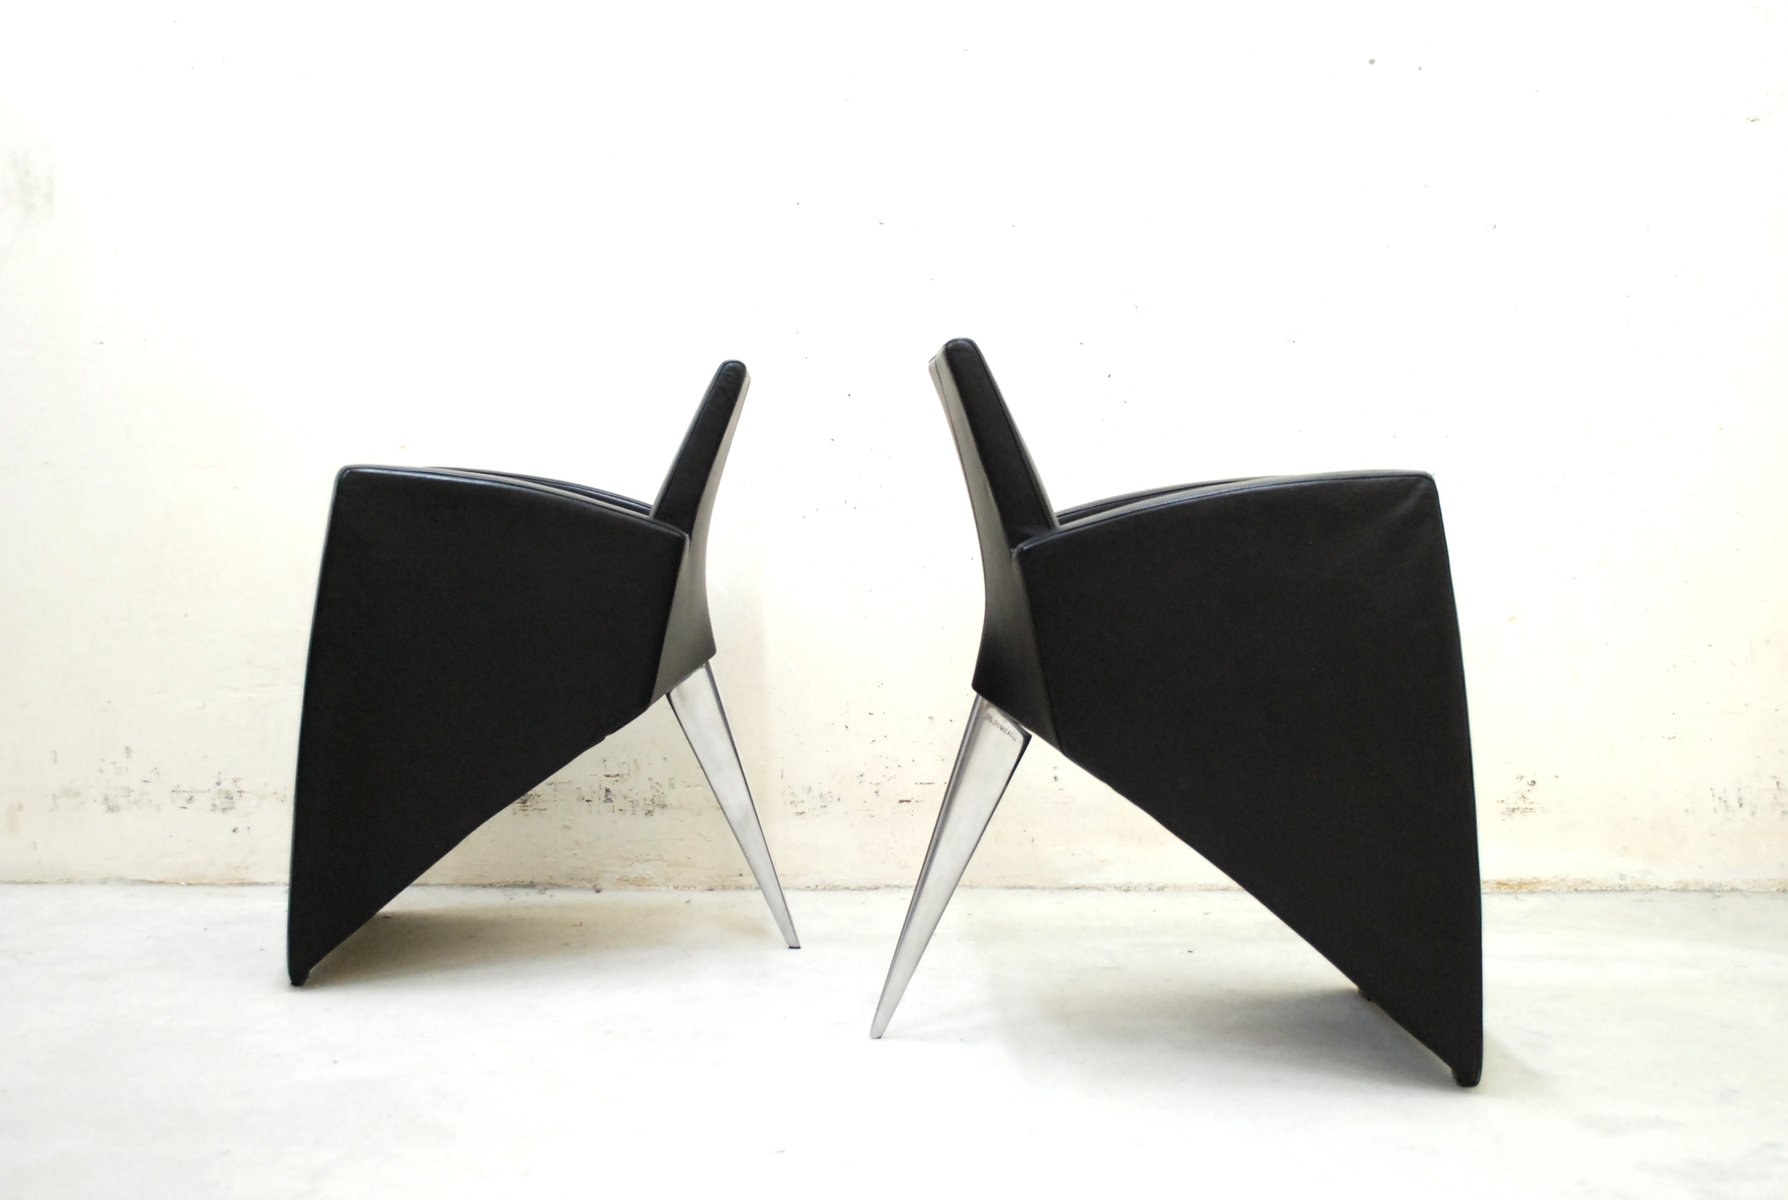 jack lang armchairs by philippe starck for driade aleph. Black Bedroom Furniture Sets. Home Design Ideas